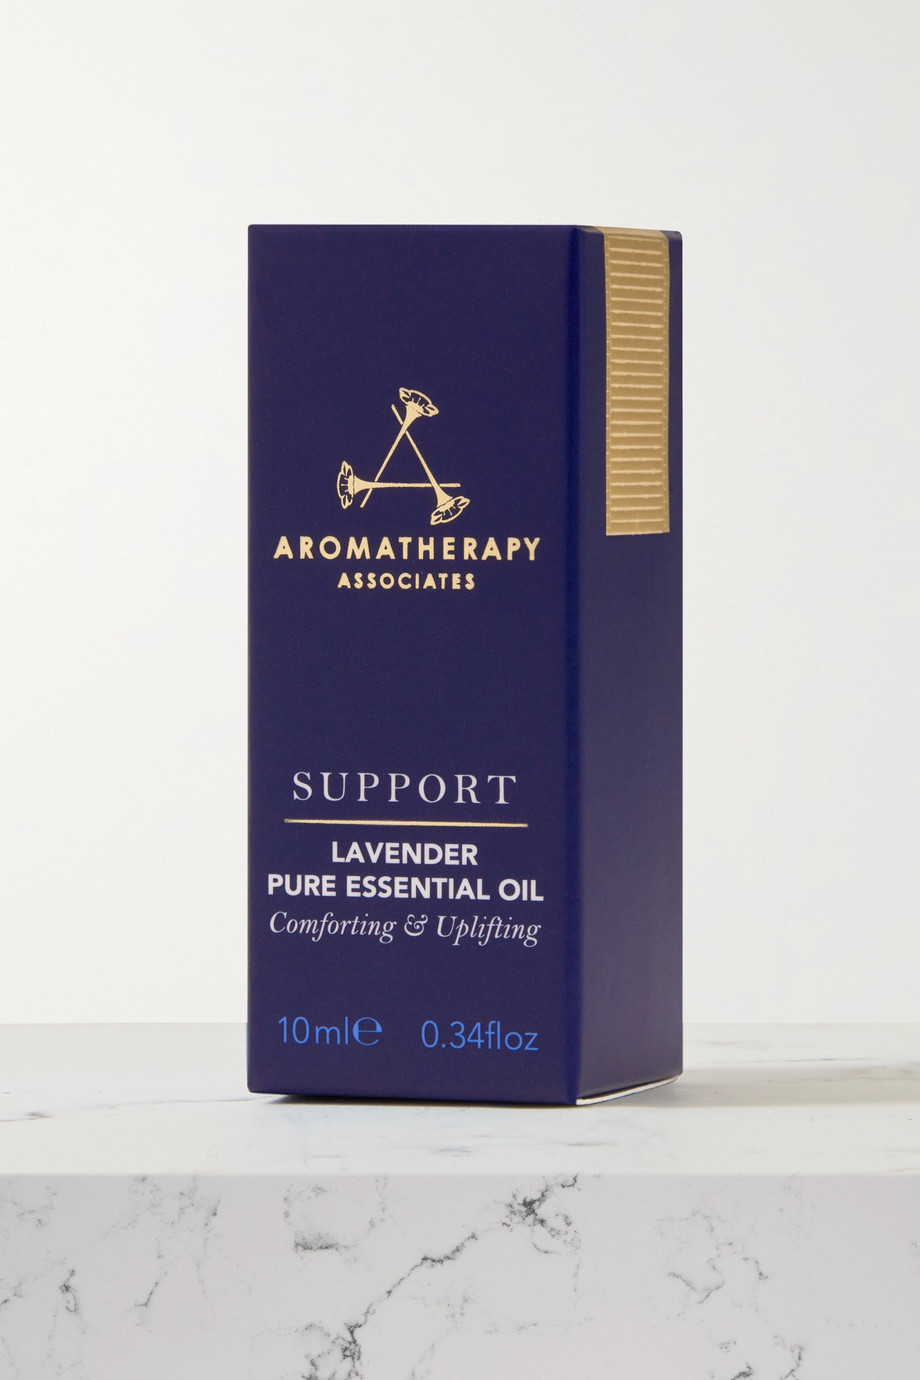 Aromatherapy Associates Support Lavender Pure Essential Oil, 10ml